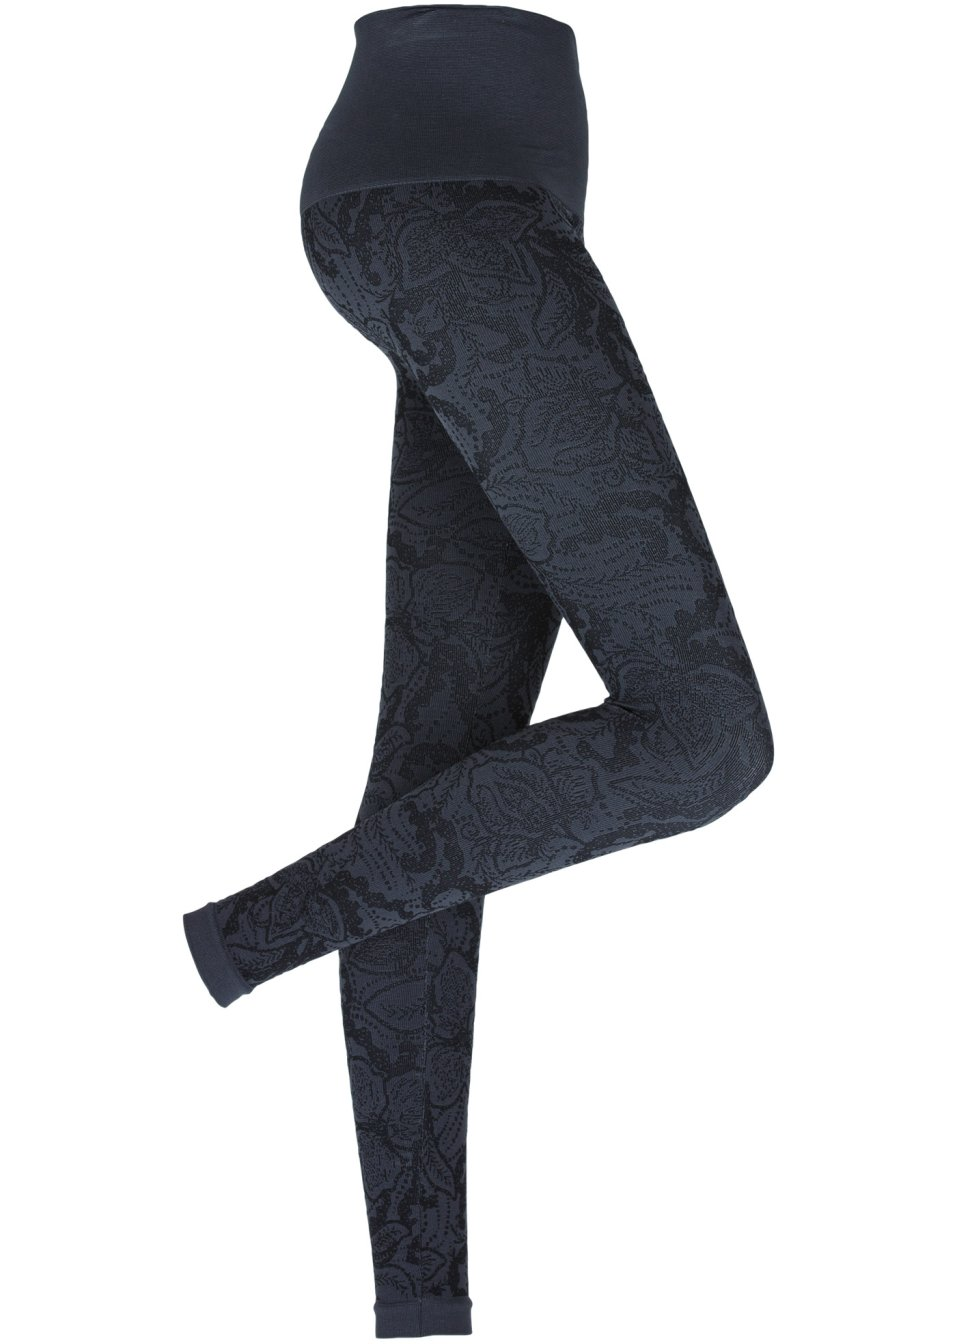 Graue Leggings - trendy Hose in gemütlicher Passform